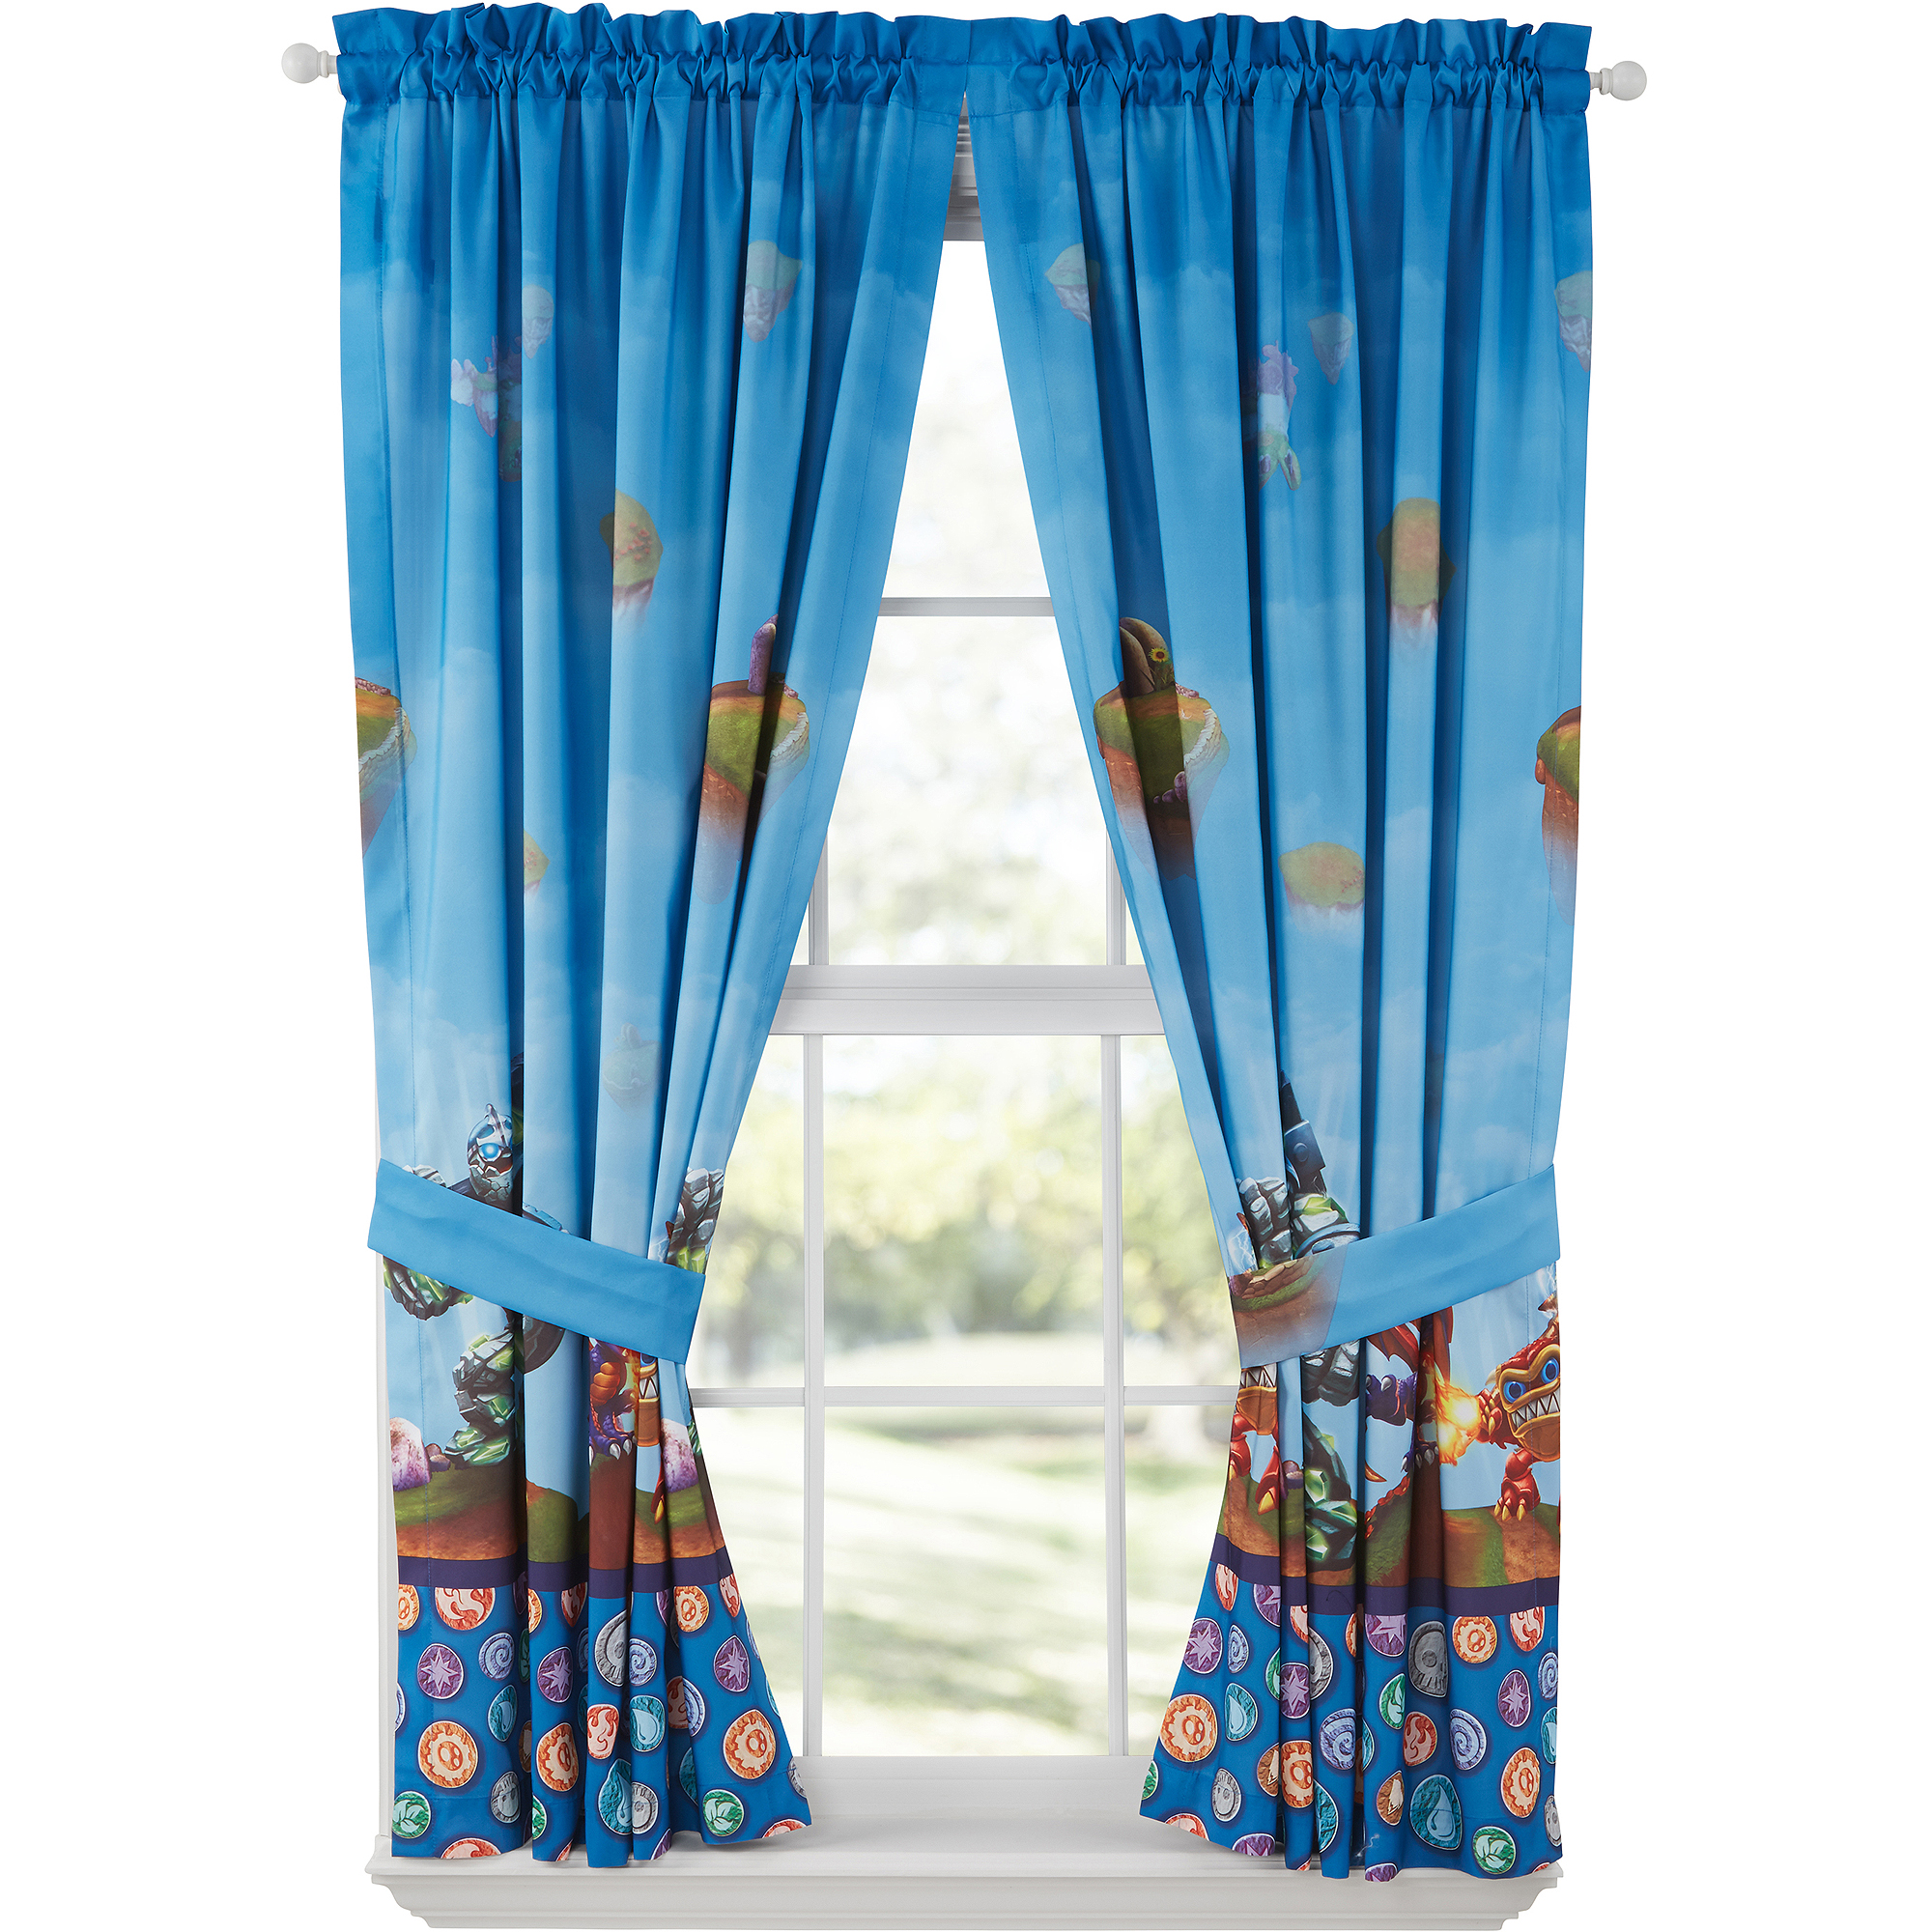 Skylanders Boys Bedroom Curtains, Set Of 2